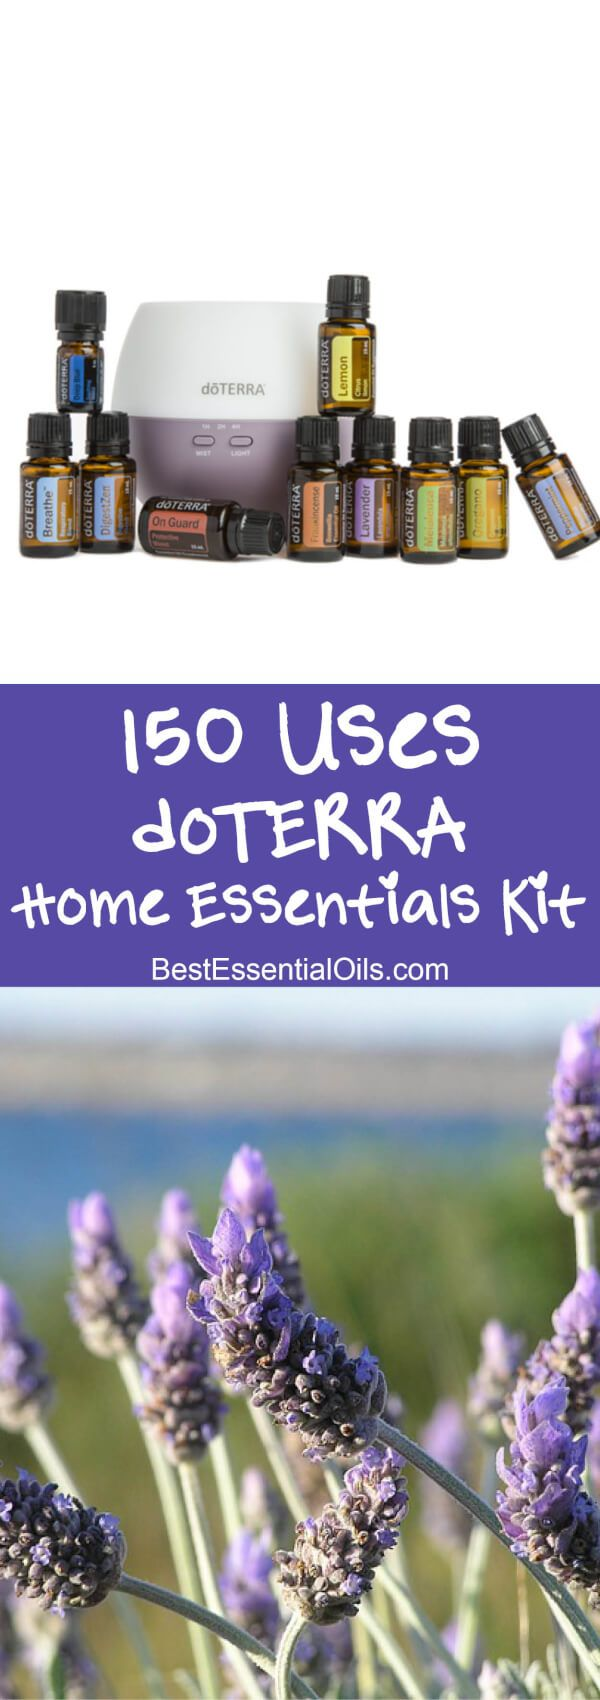 150 Uses of the Home Essentials doTERRA Starter Kit https://www.mydoterra.com/bethanyhudson/#/